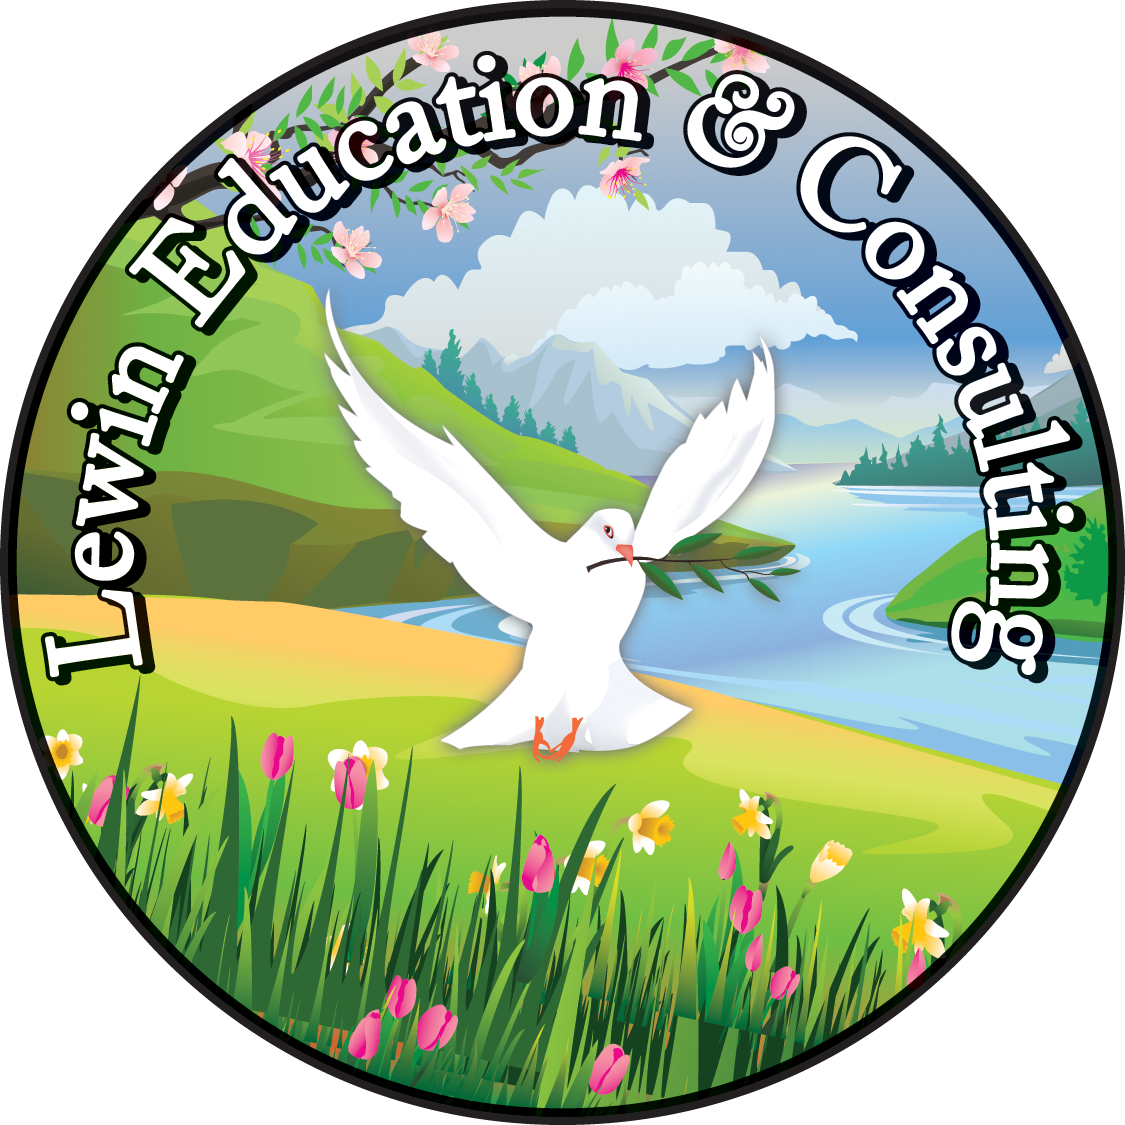 Lewin Education and Consulting logo